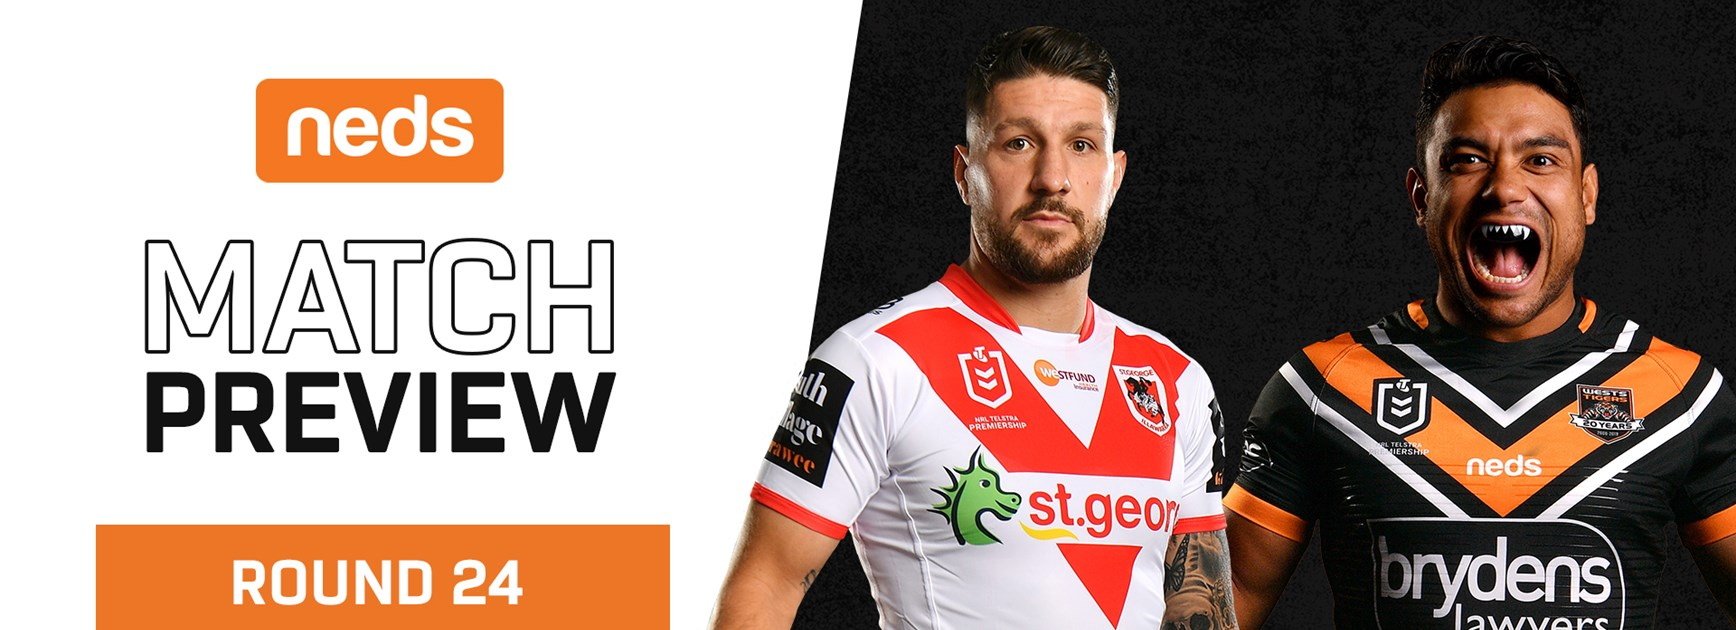 Neds Match Preview: Round 24